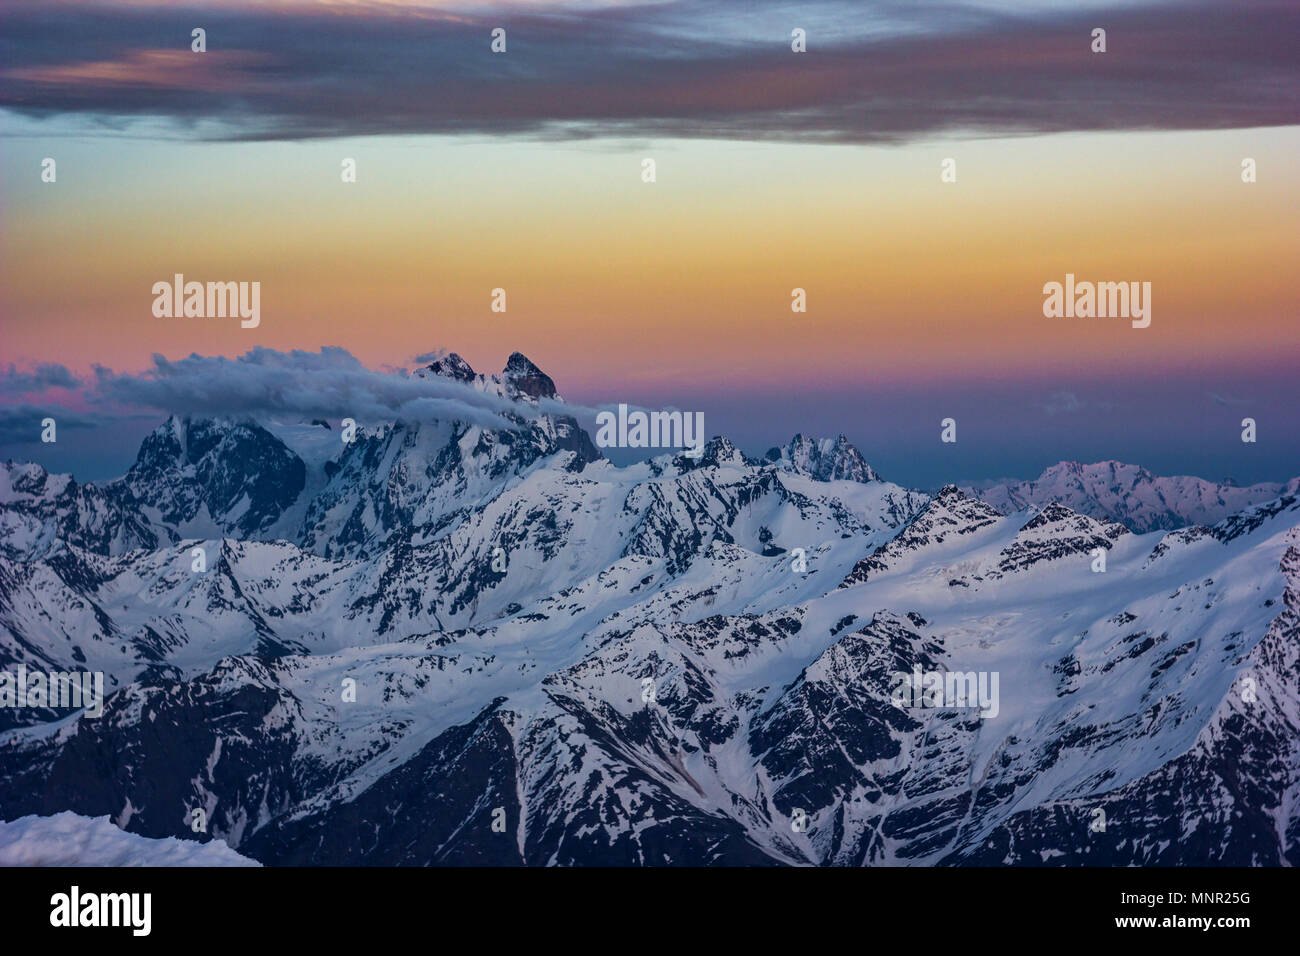 snowy Caucasus mountains at sunset - Stock Image